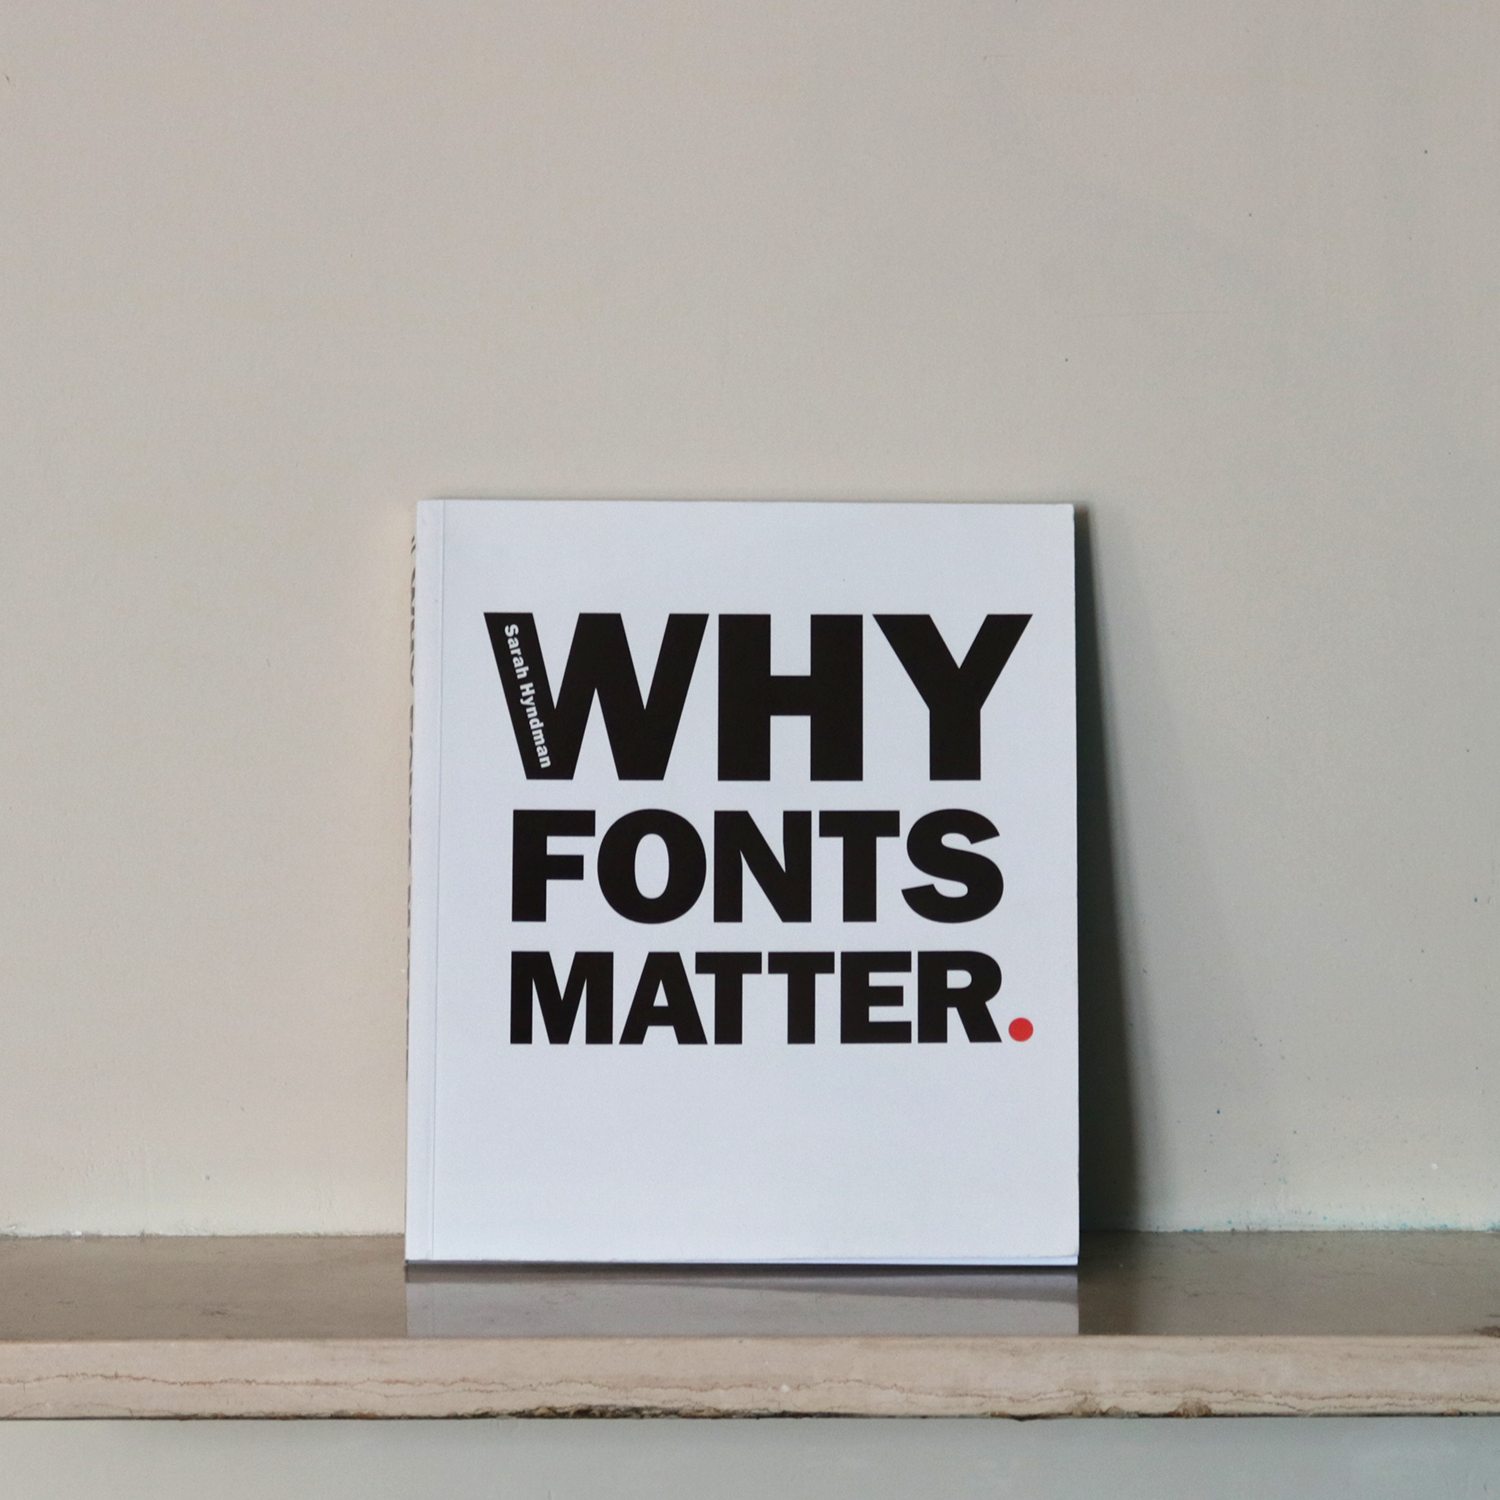 Why fonts matter.